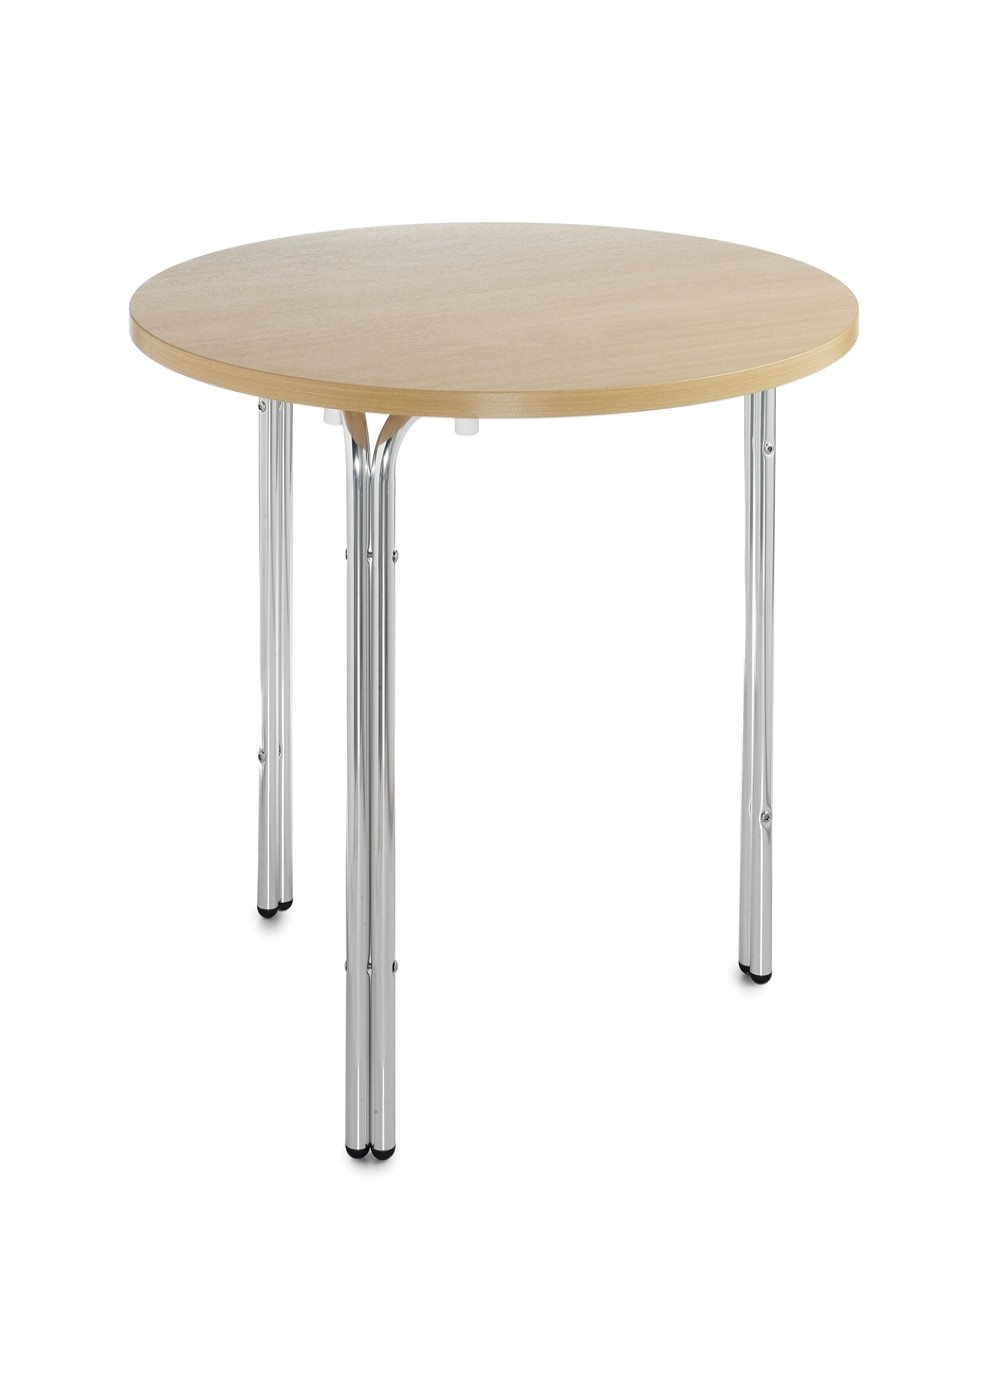 Stacking round bistro table n6bt 121 office furniture for Table 7 bistro